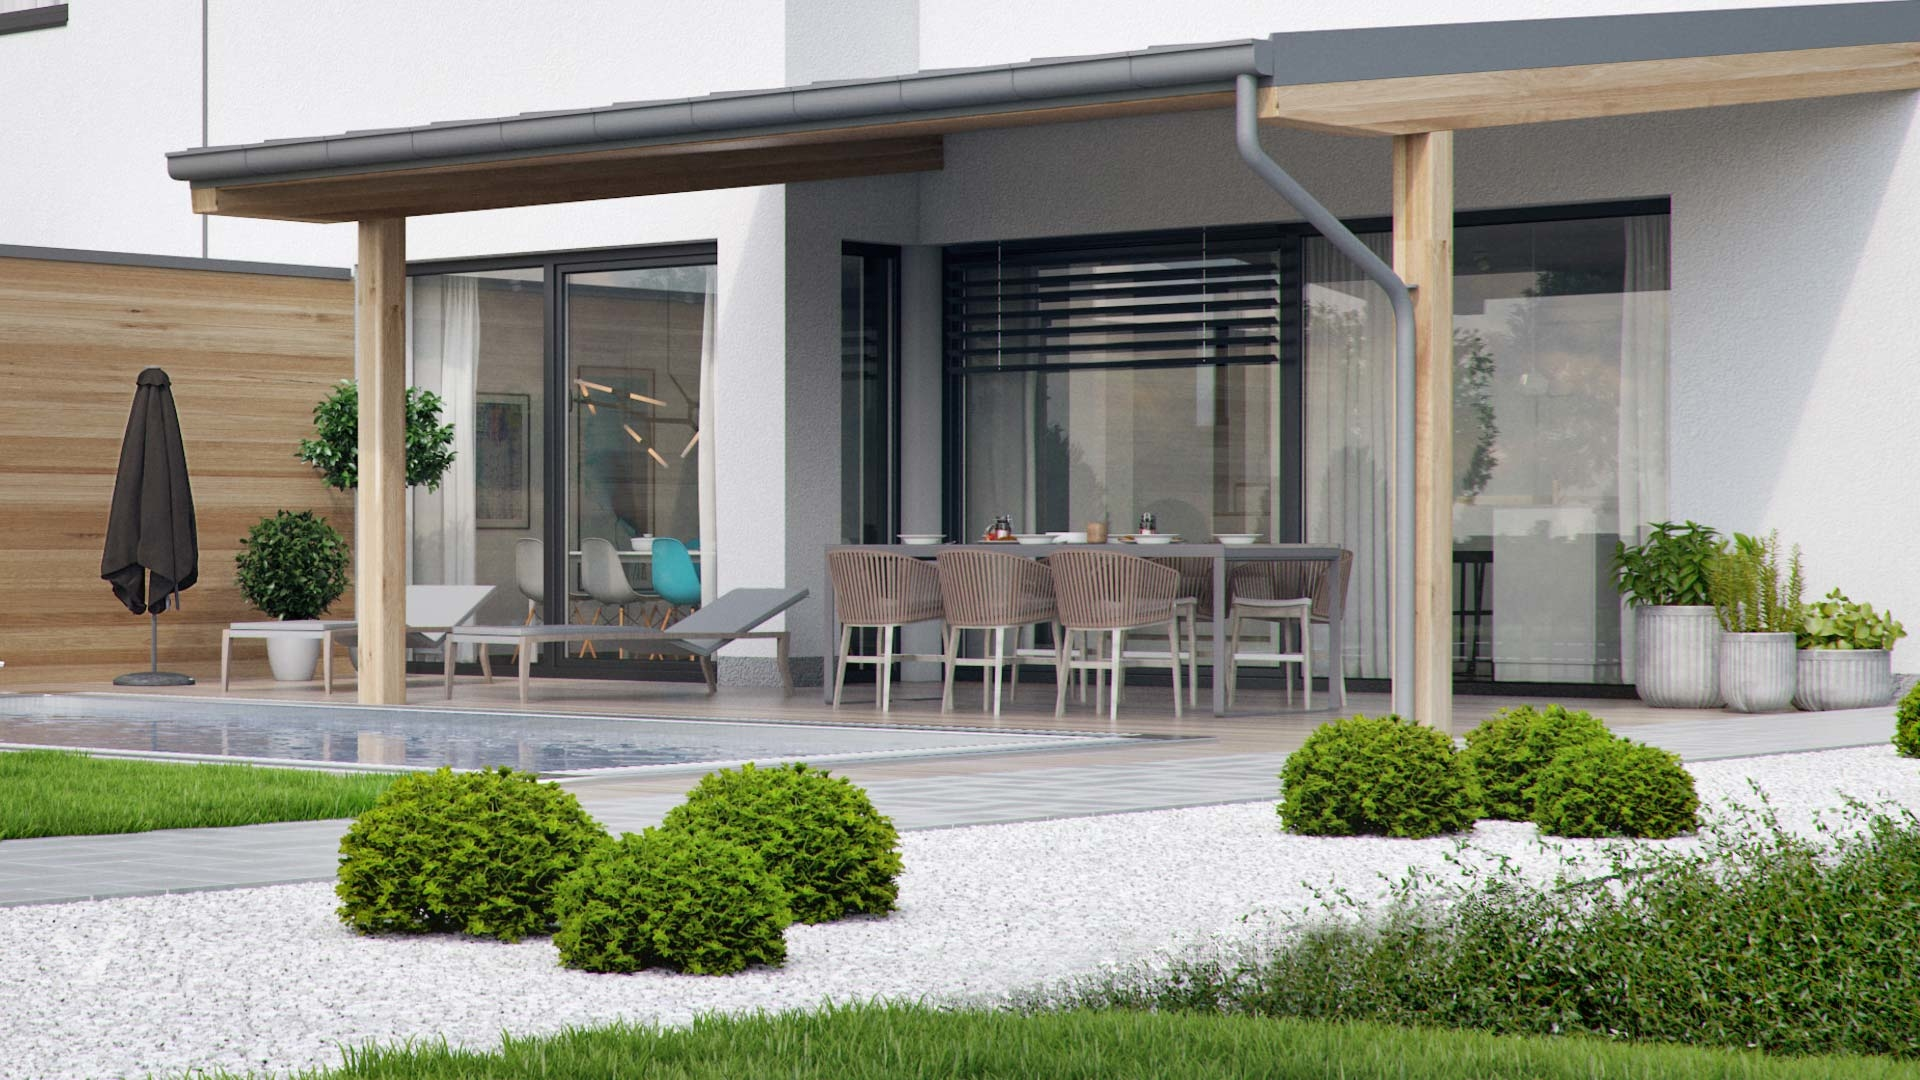 3d exterior visualisation of a house- garden view